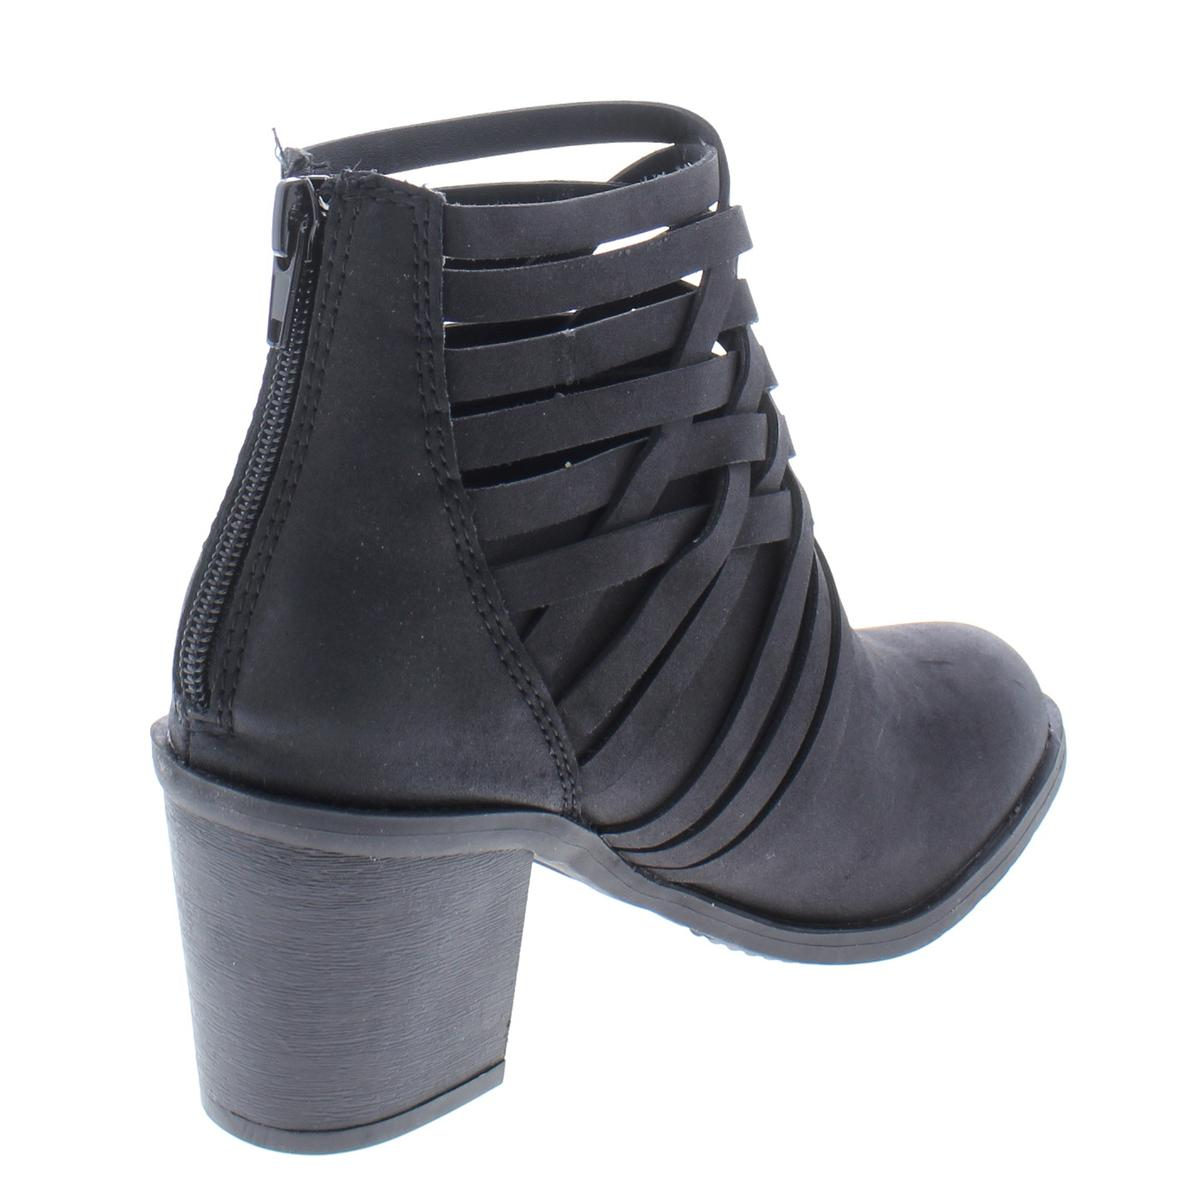 American Rag Womens Varya Closed Toe Ankle Fashion Boots